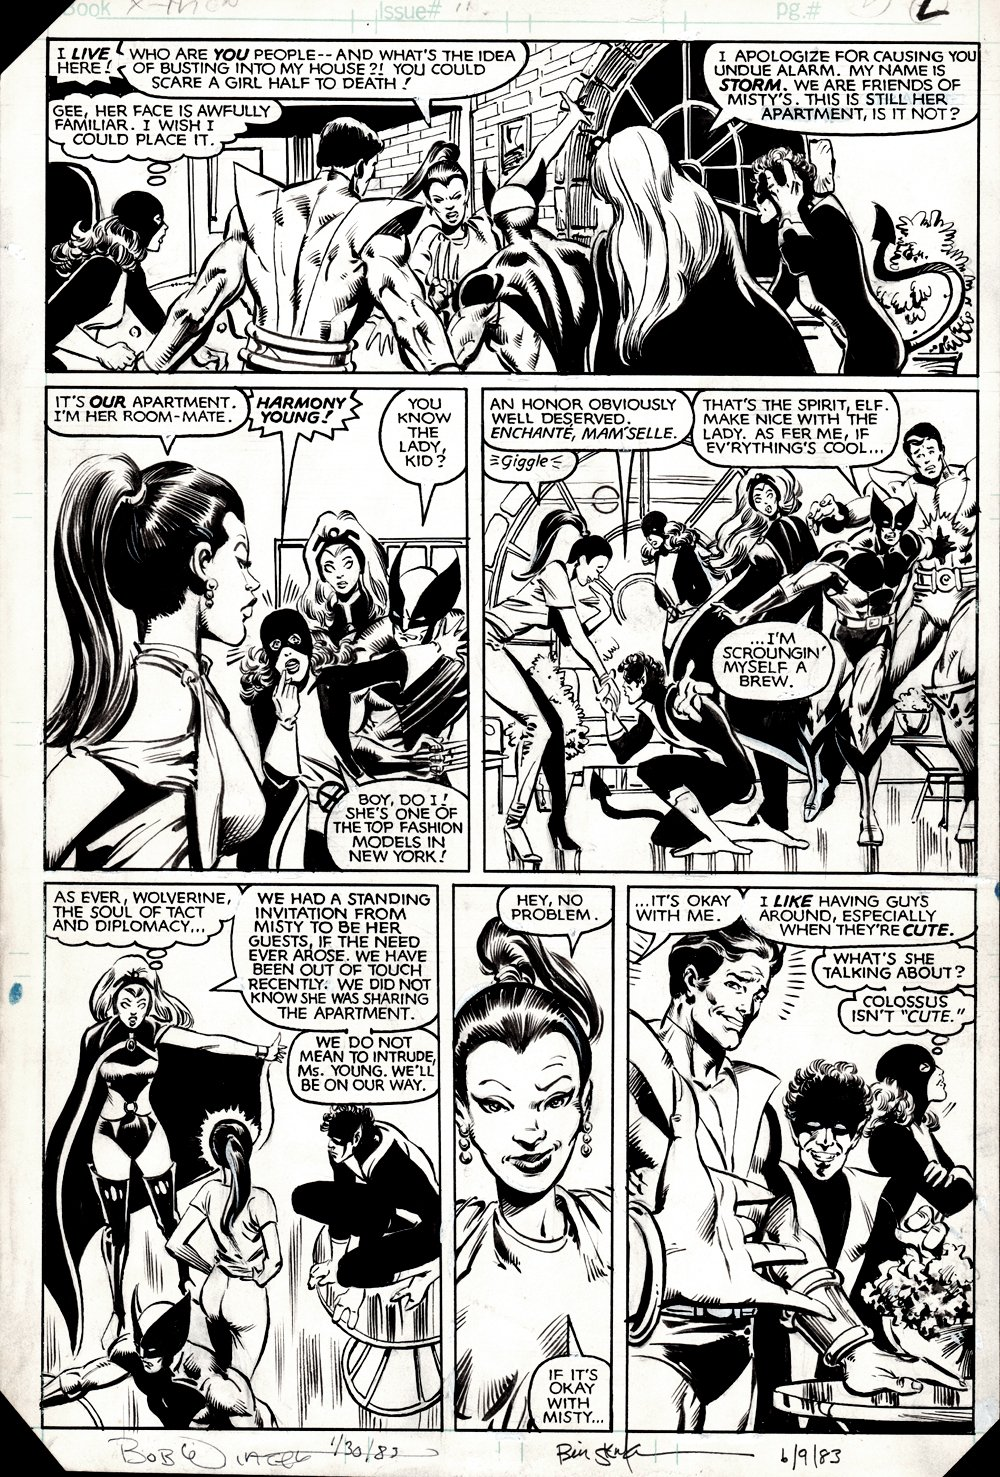 Uncanny X-Men #159 p 2 (BILL SIENKIEWICZ Drawn: Storm, Wolverine, Colossus, Nightcrawler, Kitty Pryde!) 1982